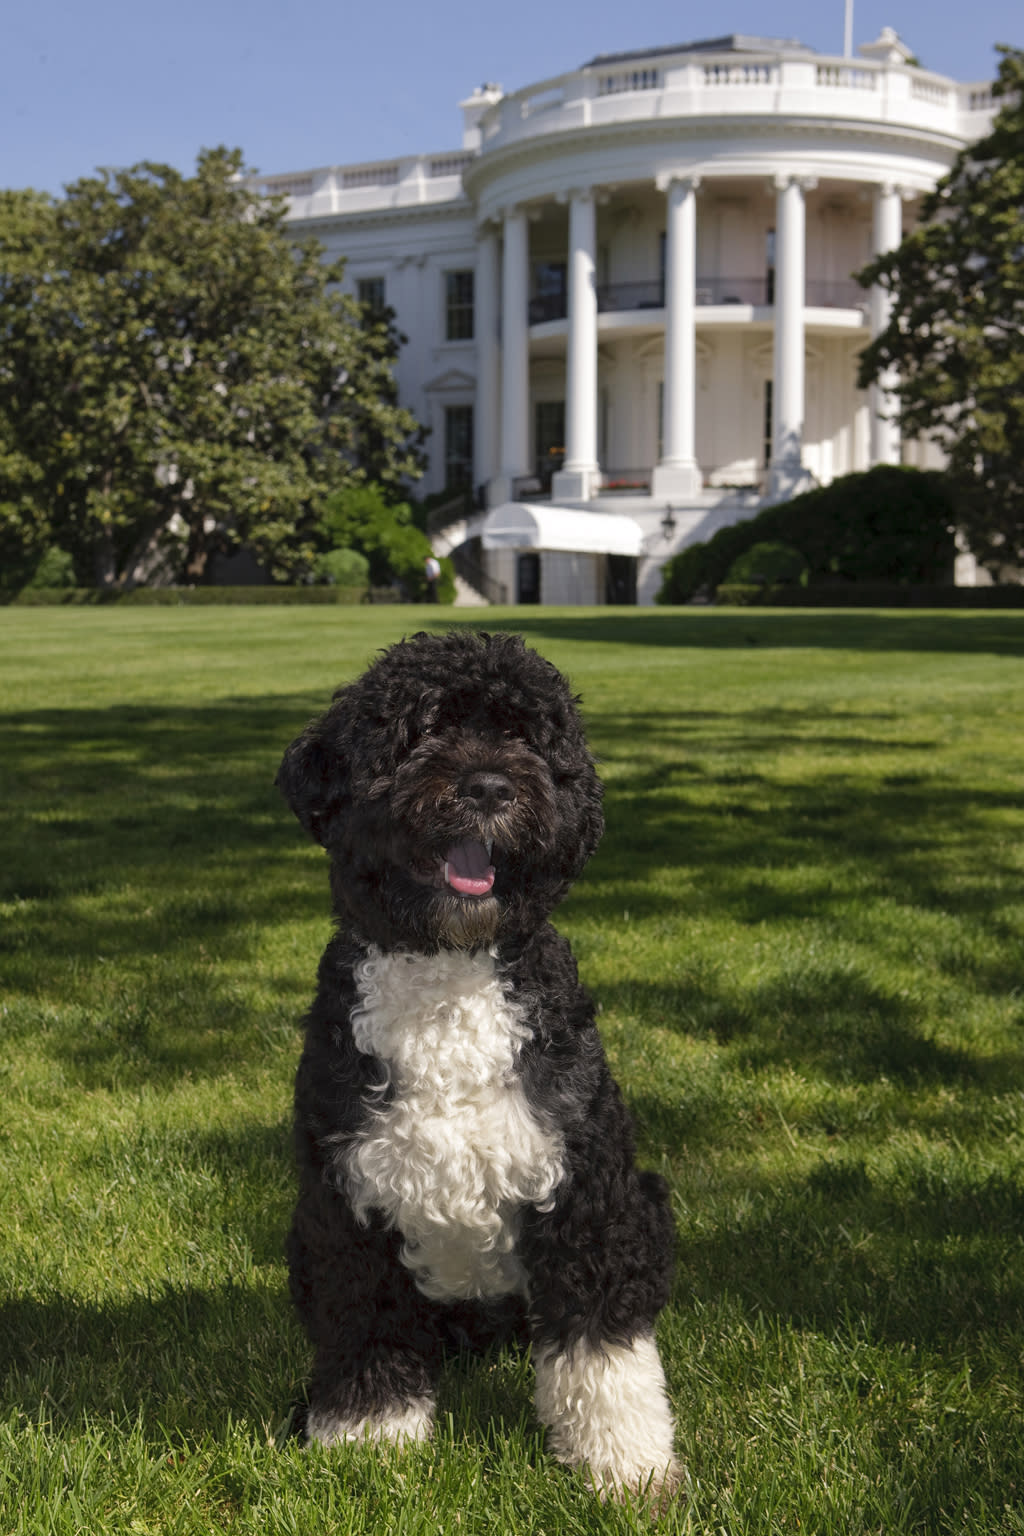 """In this handout image provided by The White House, the official portrait of the Obama family dog """"Bo"""", a Portuguese water dog, on the South Lawn of the White House on May 20, 2009 in Washington, DC. (Photo by Chuck Kennedy/The White House via Getty Images)"""